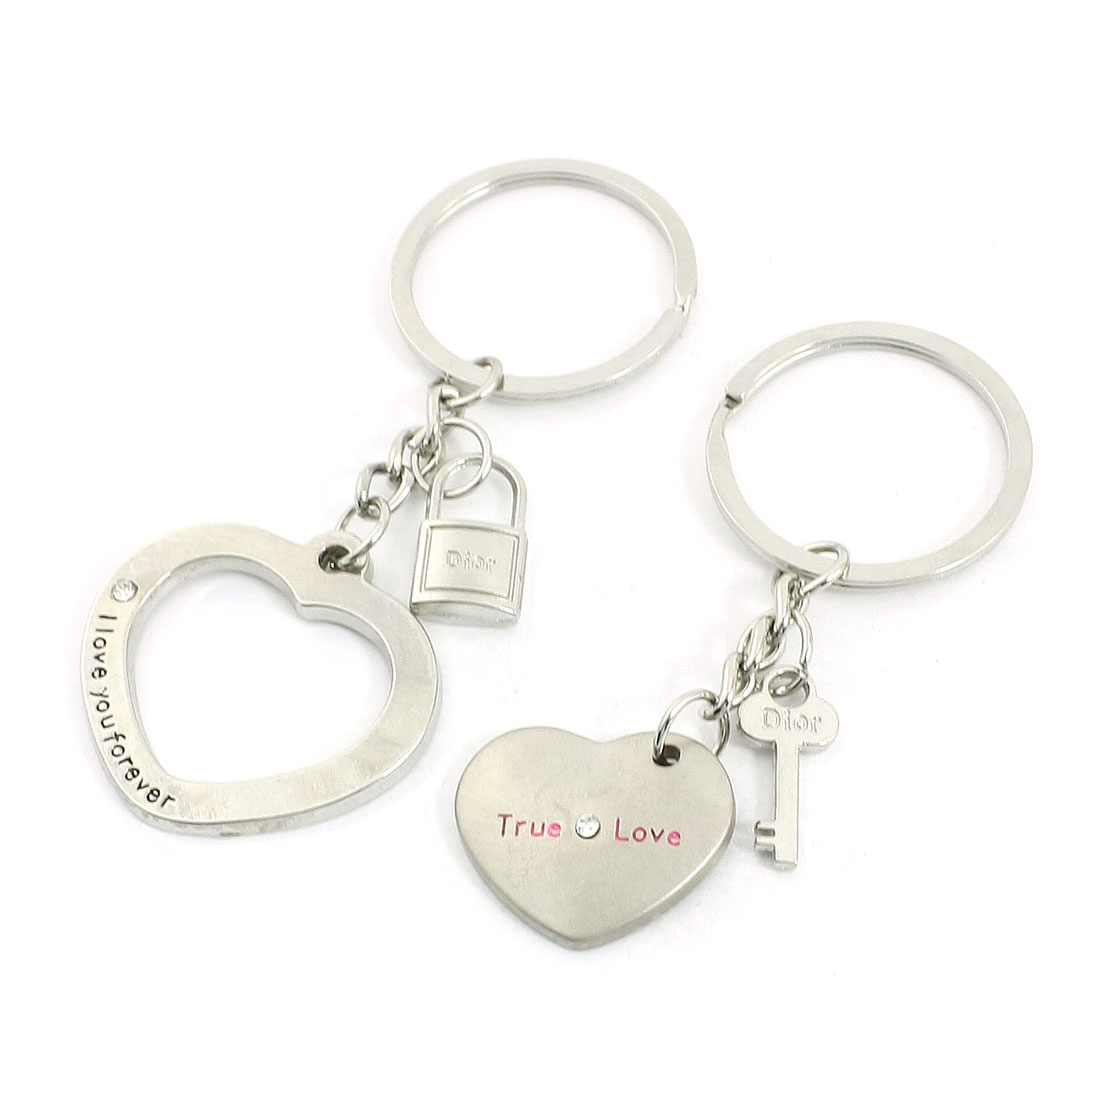 Silver Tone Love Heart Pendant Lovers Keyrings Keychains 2 Pieces